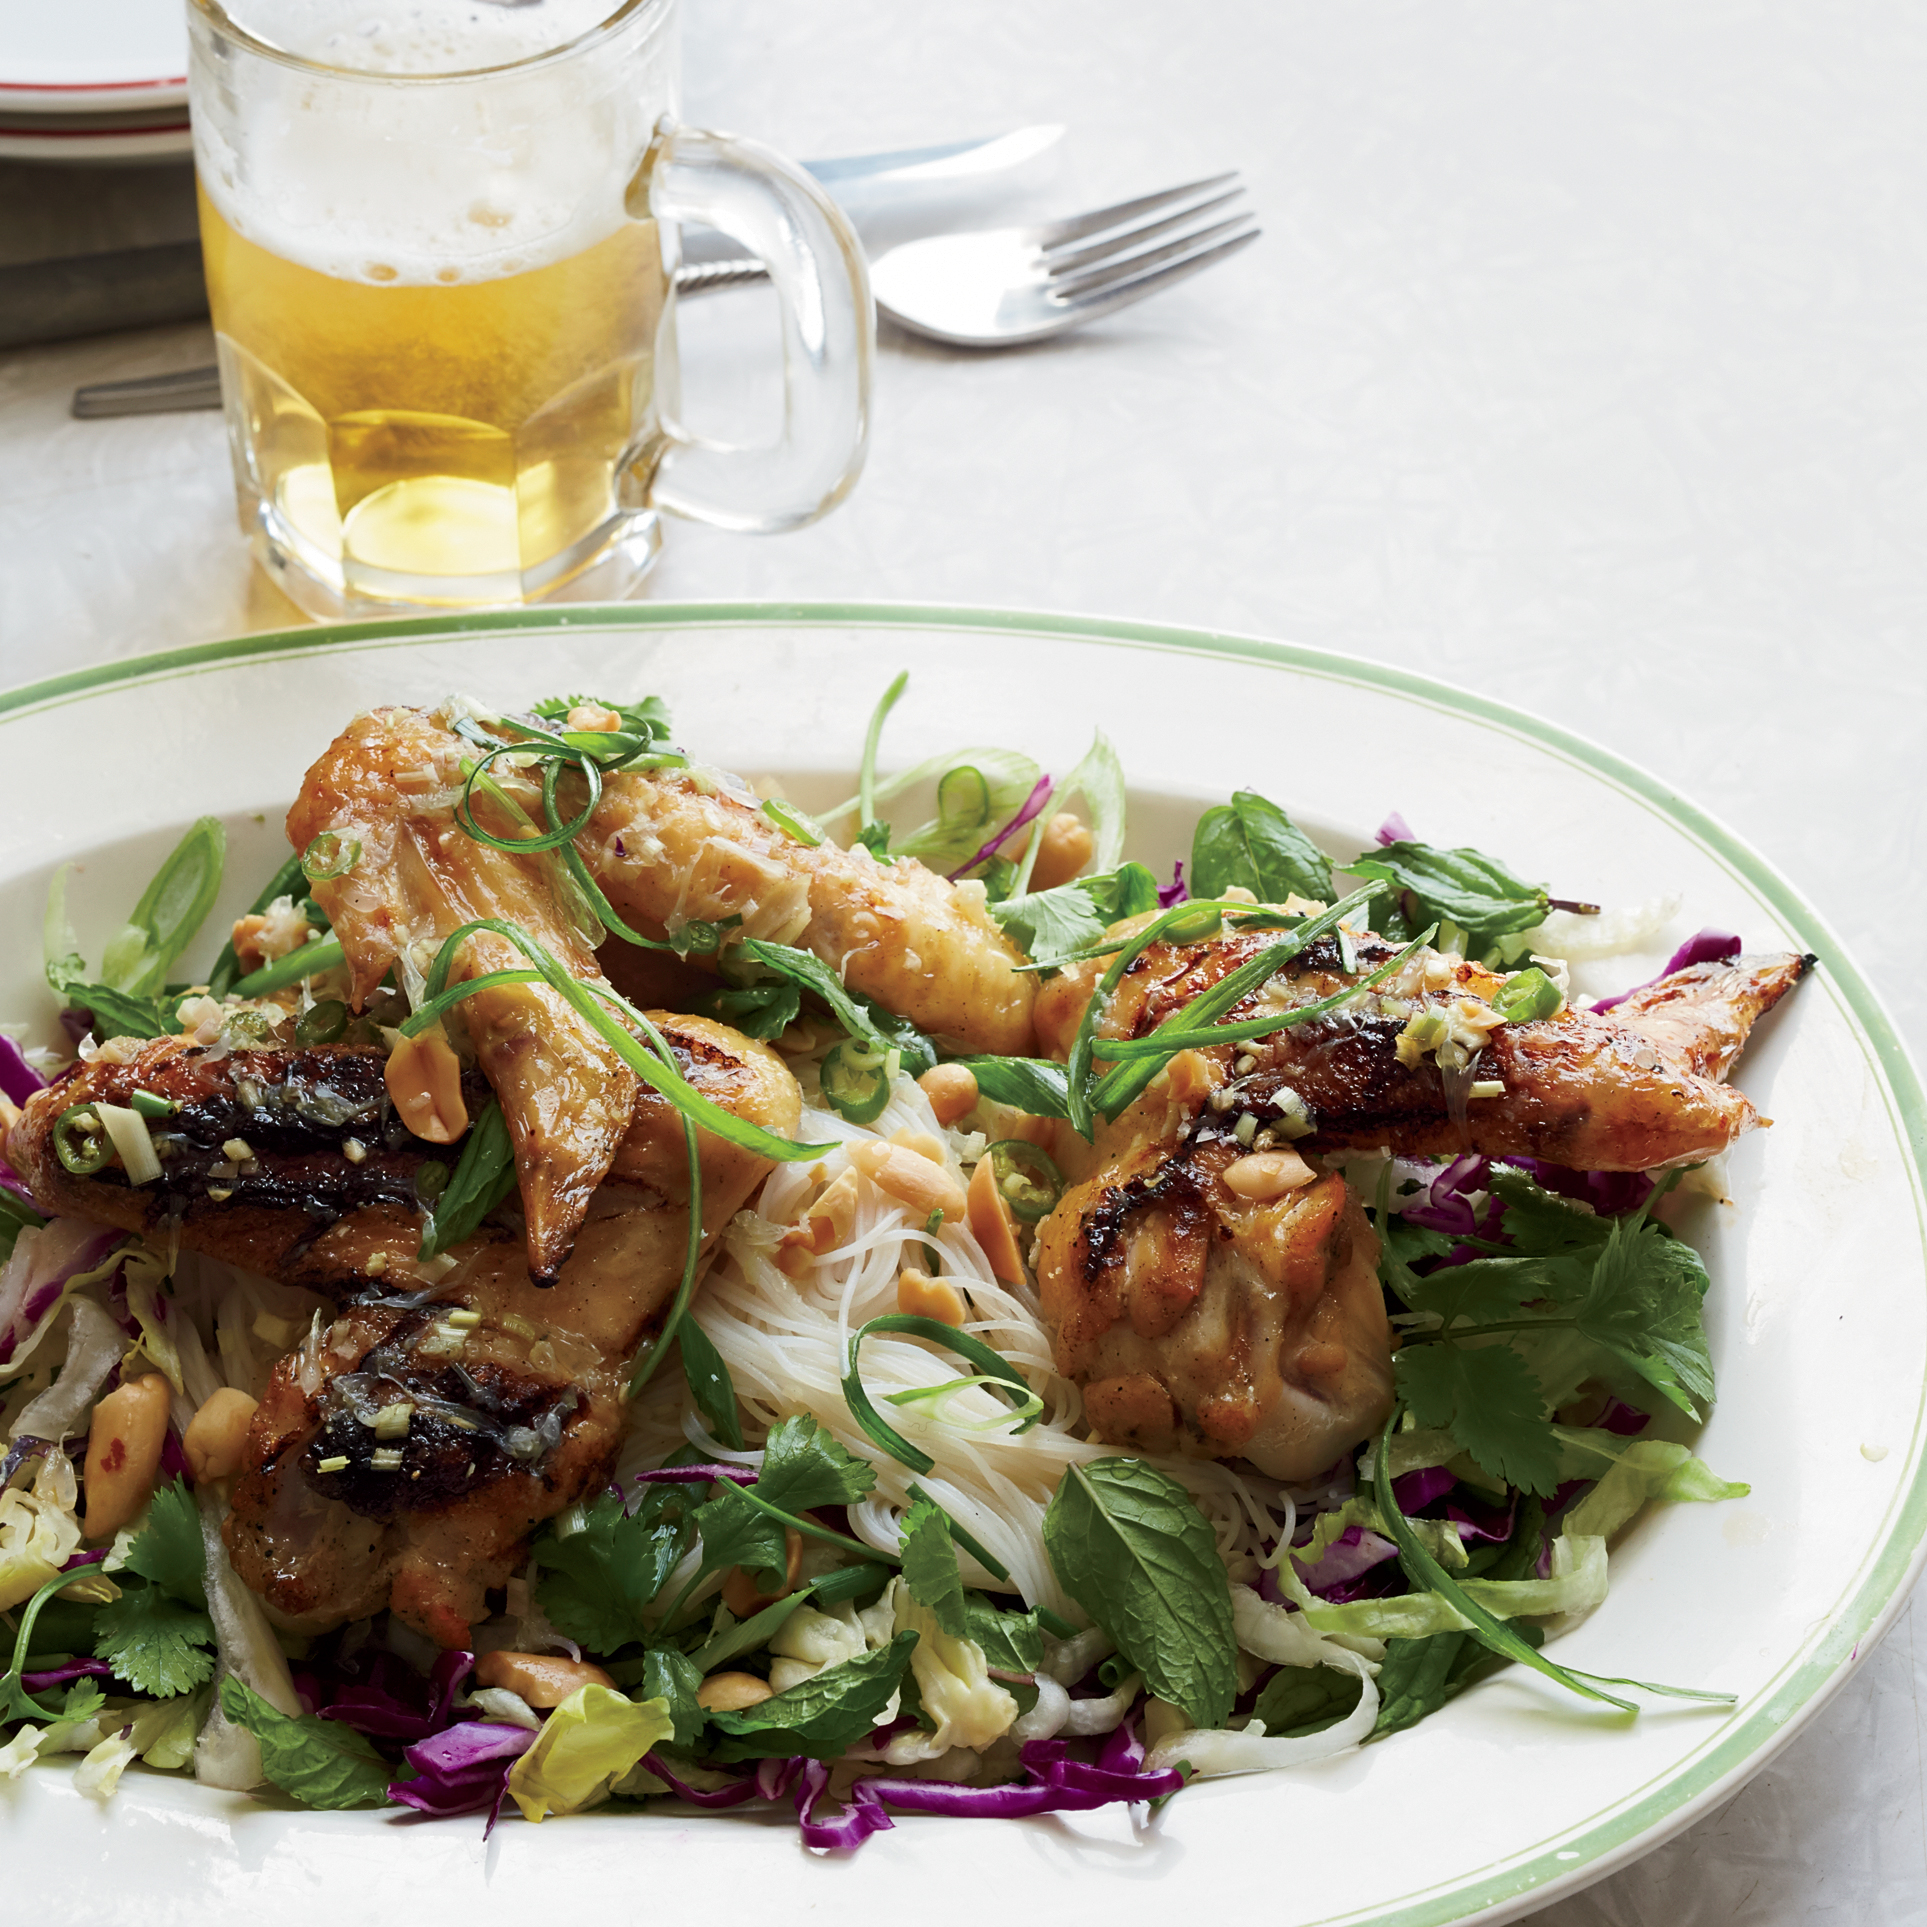 Spicy Fish Sauce Chicken Wings with Vermicelli Salad